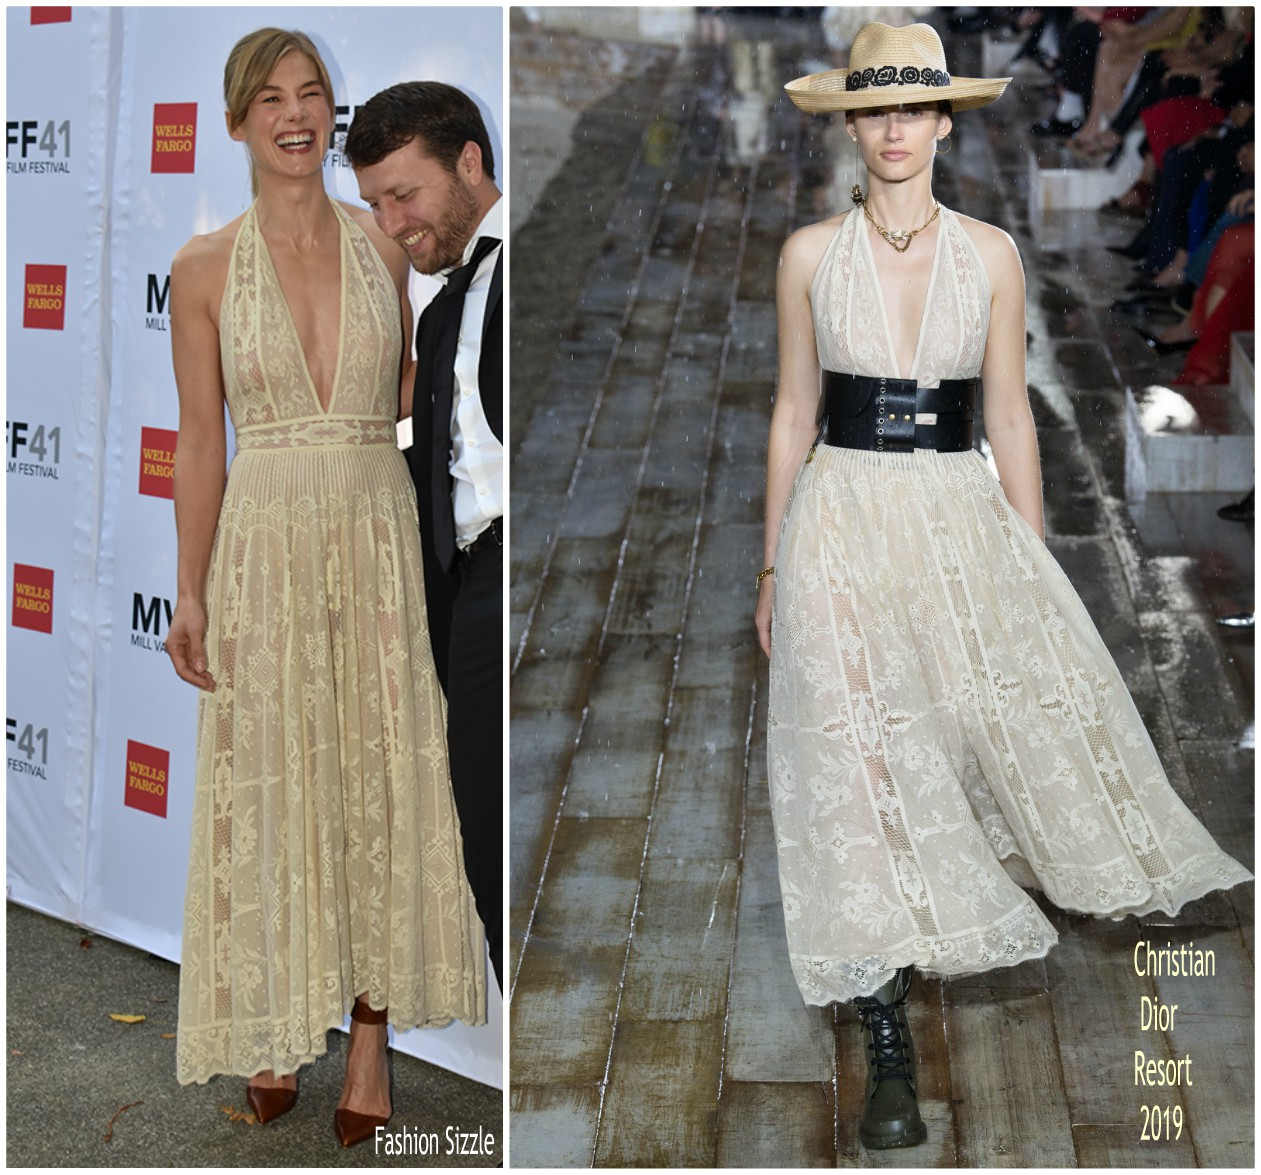 rosamund-pike-in-christian-dior-a-private-war-mill-valley-film-festival-premiere